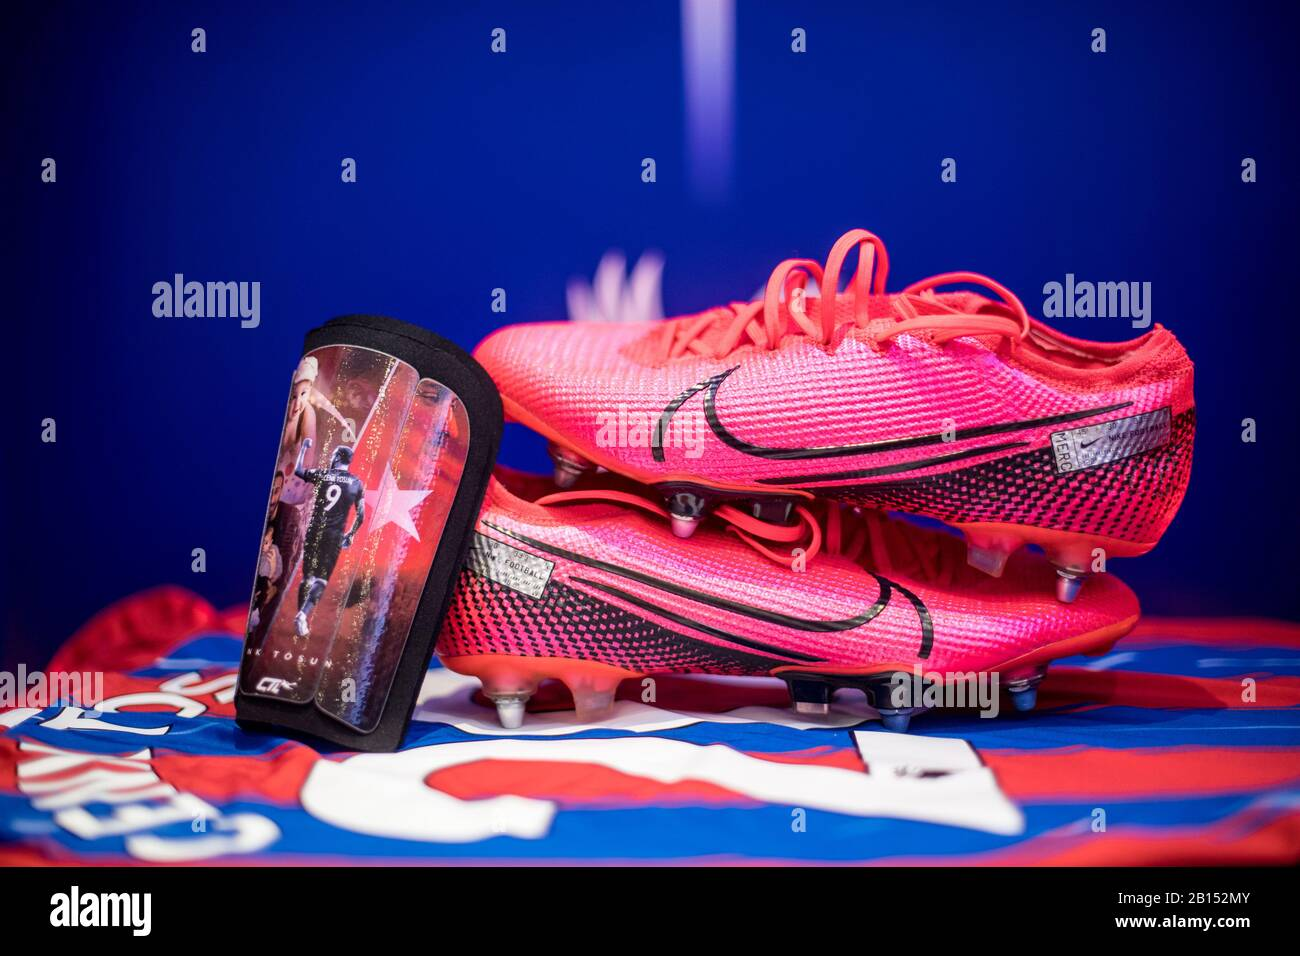 Nike Boots Immagini & Nike Boots Fotos Stock Alamy